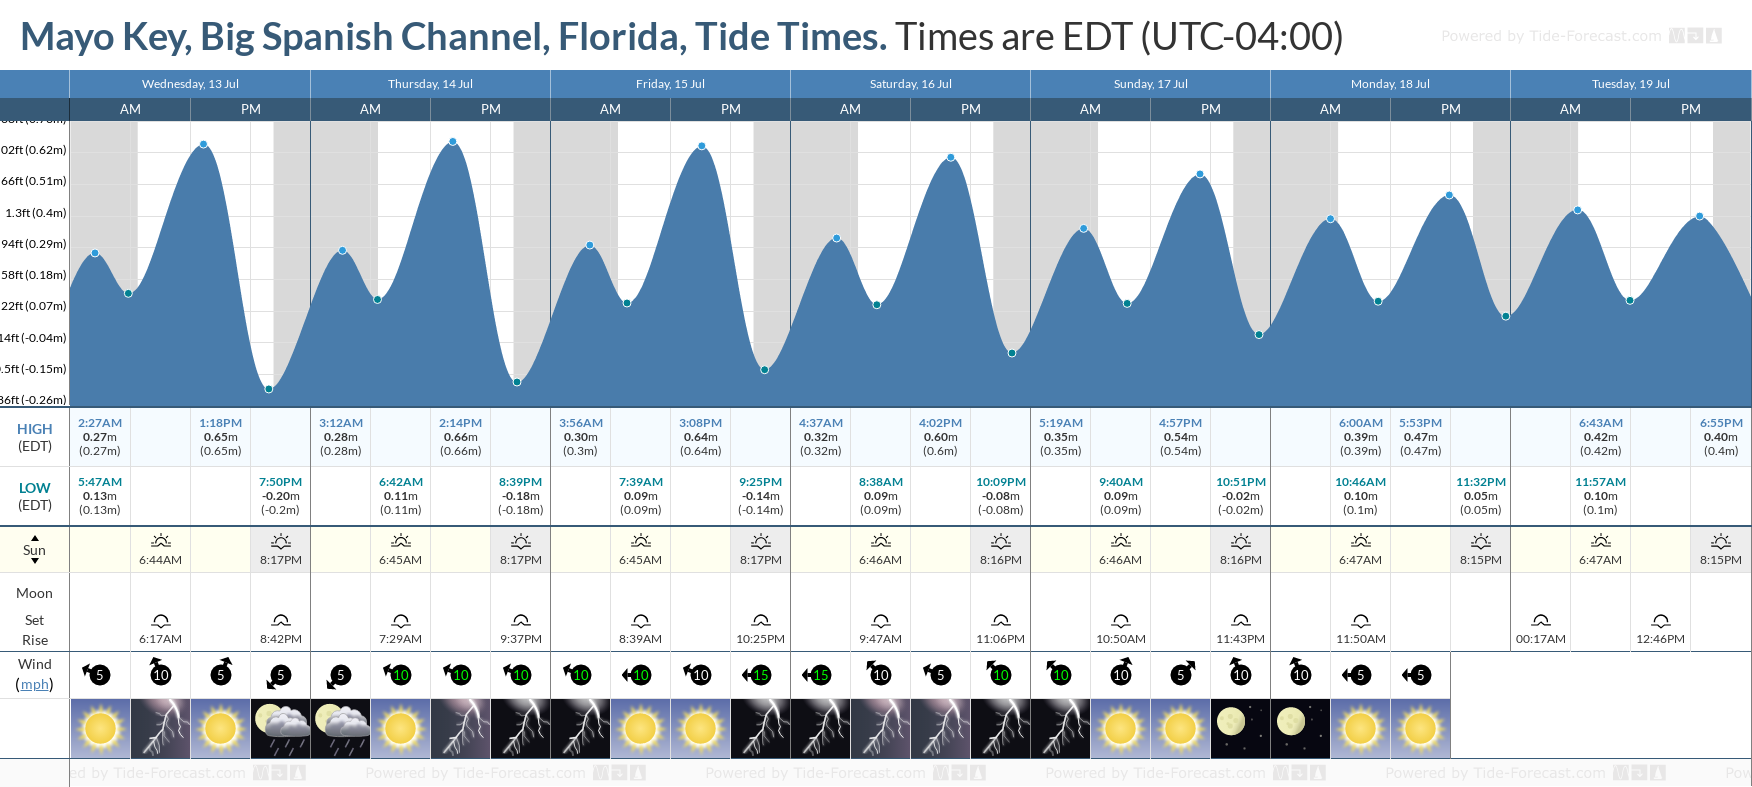 Mayo Key, Big Spanish Channel, Florida Tide Chart including high and low tide tide times for the next 7 days